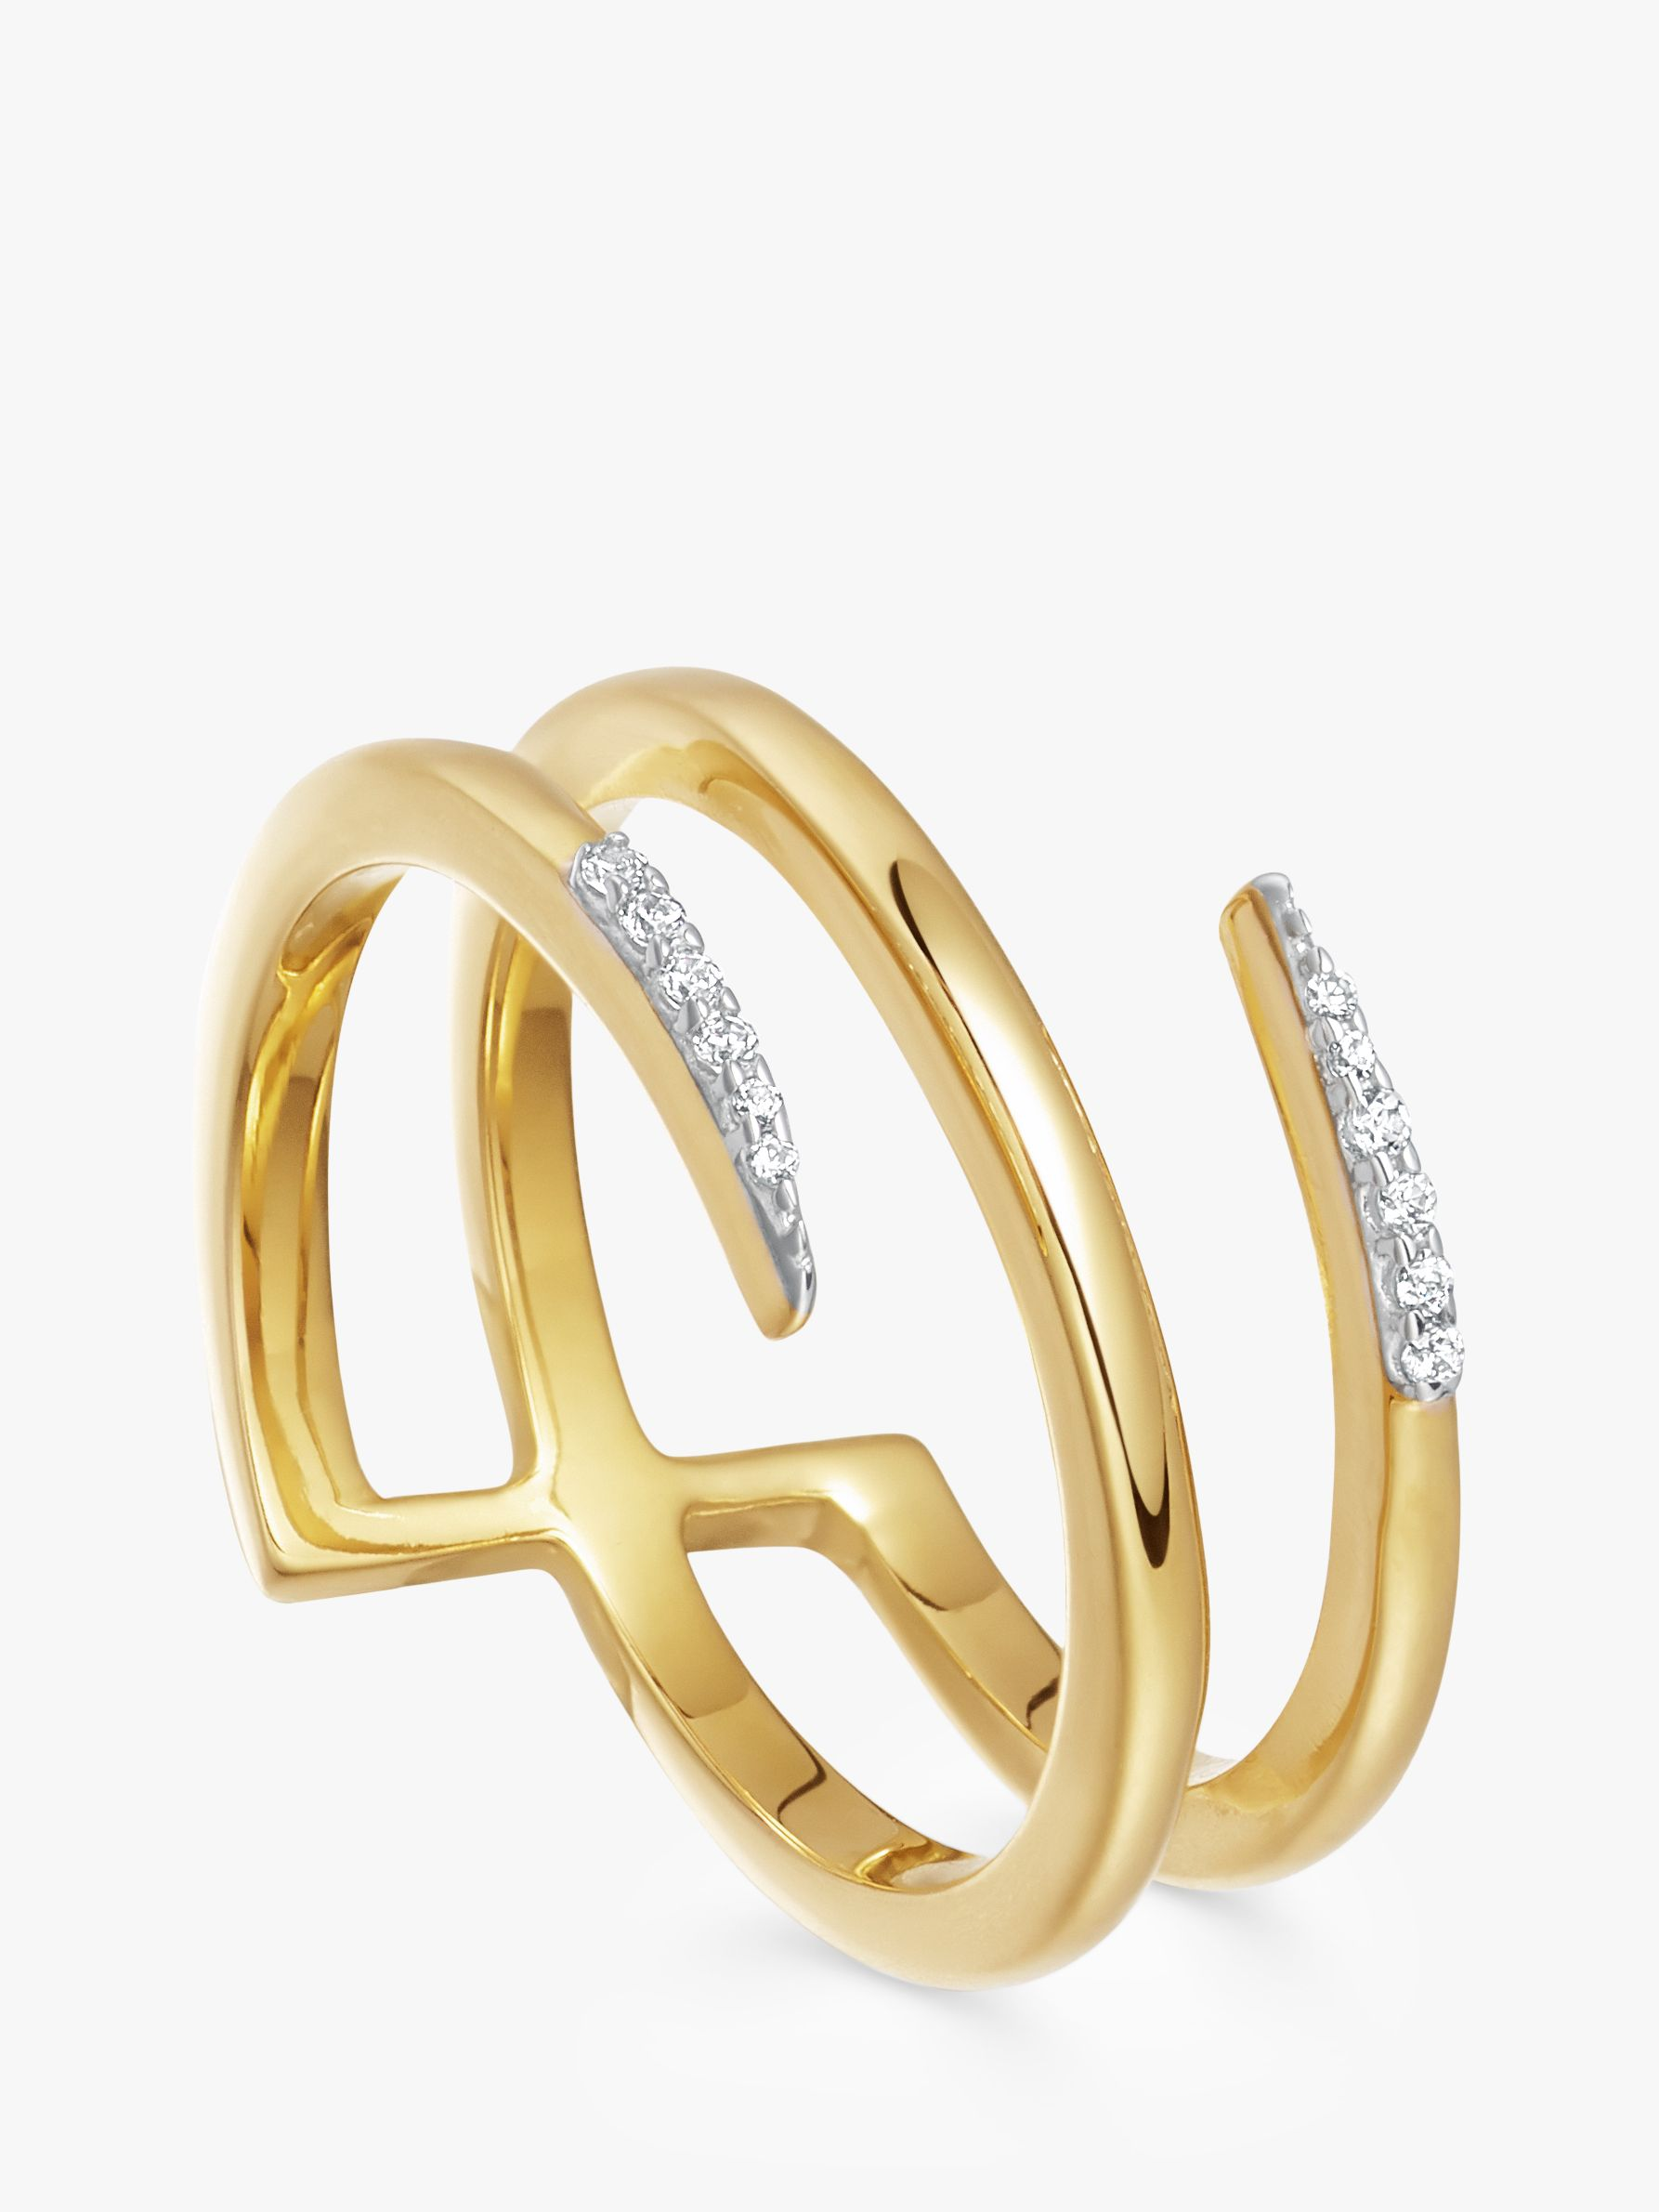 Missoma Missoma Cubic Zirconia Pave Claw Lacuna Ring, Gold